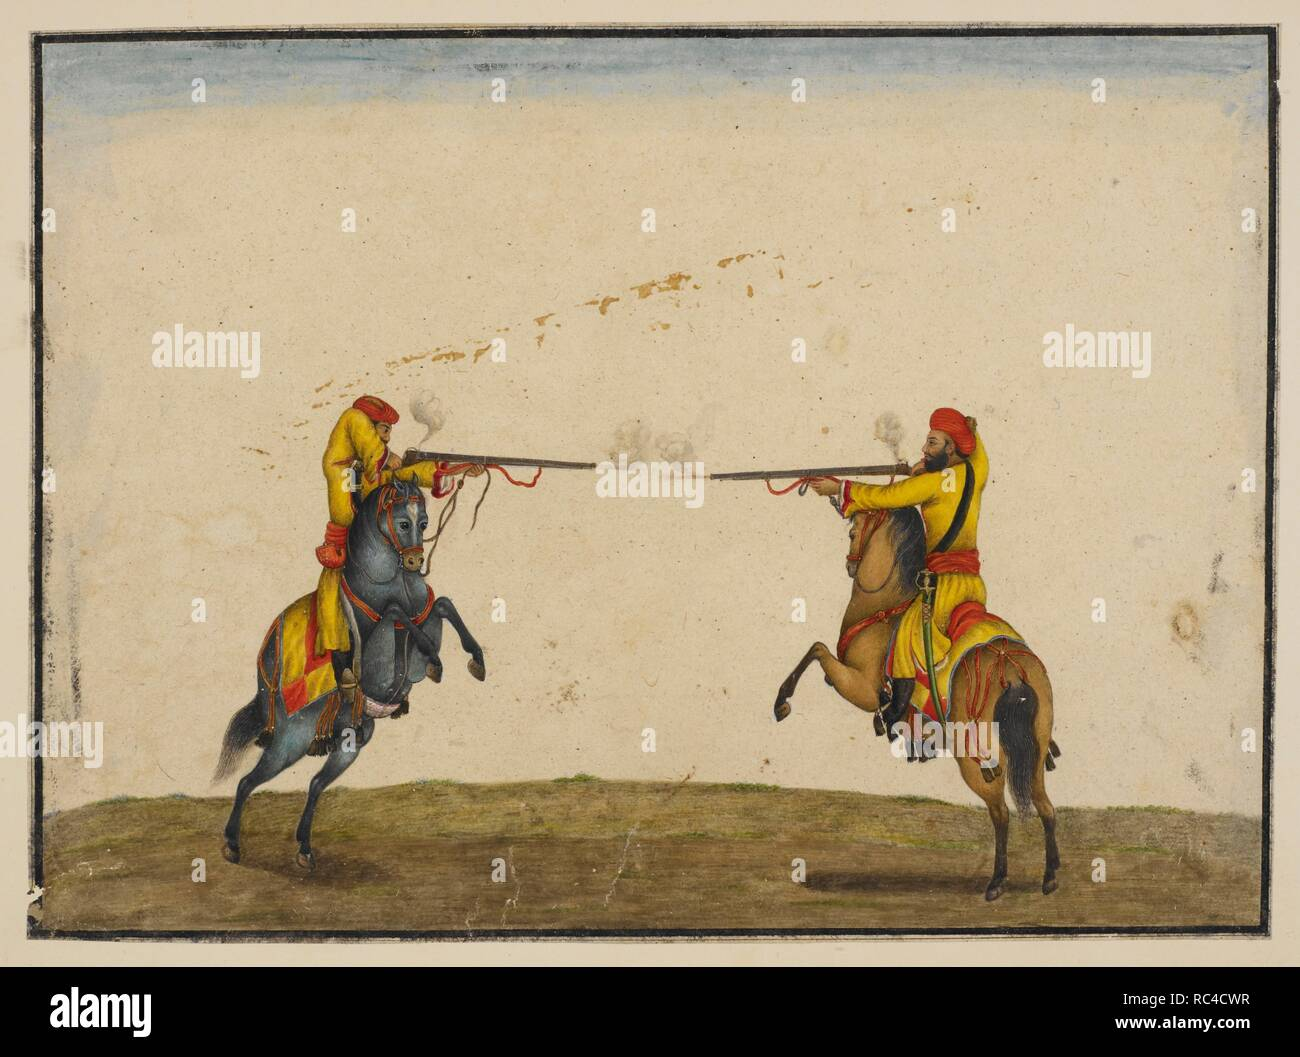 Two soldiers of Skinner's Horse skirmishing and firing at each other with blanks. Skinner Album. Delhi, 1820-1830. Watercolour. Source: Add.Or.1263. Author: Ghulam Ali Khan. - Stock Image